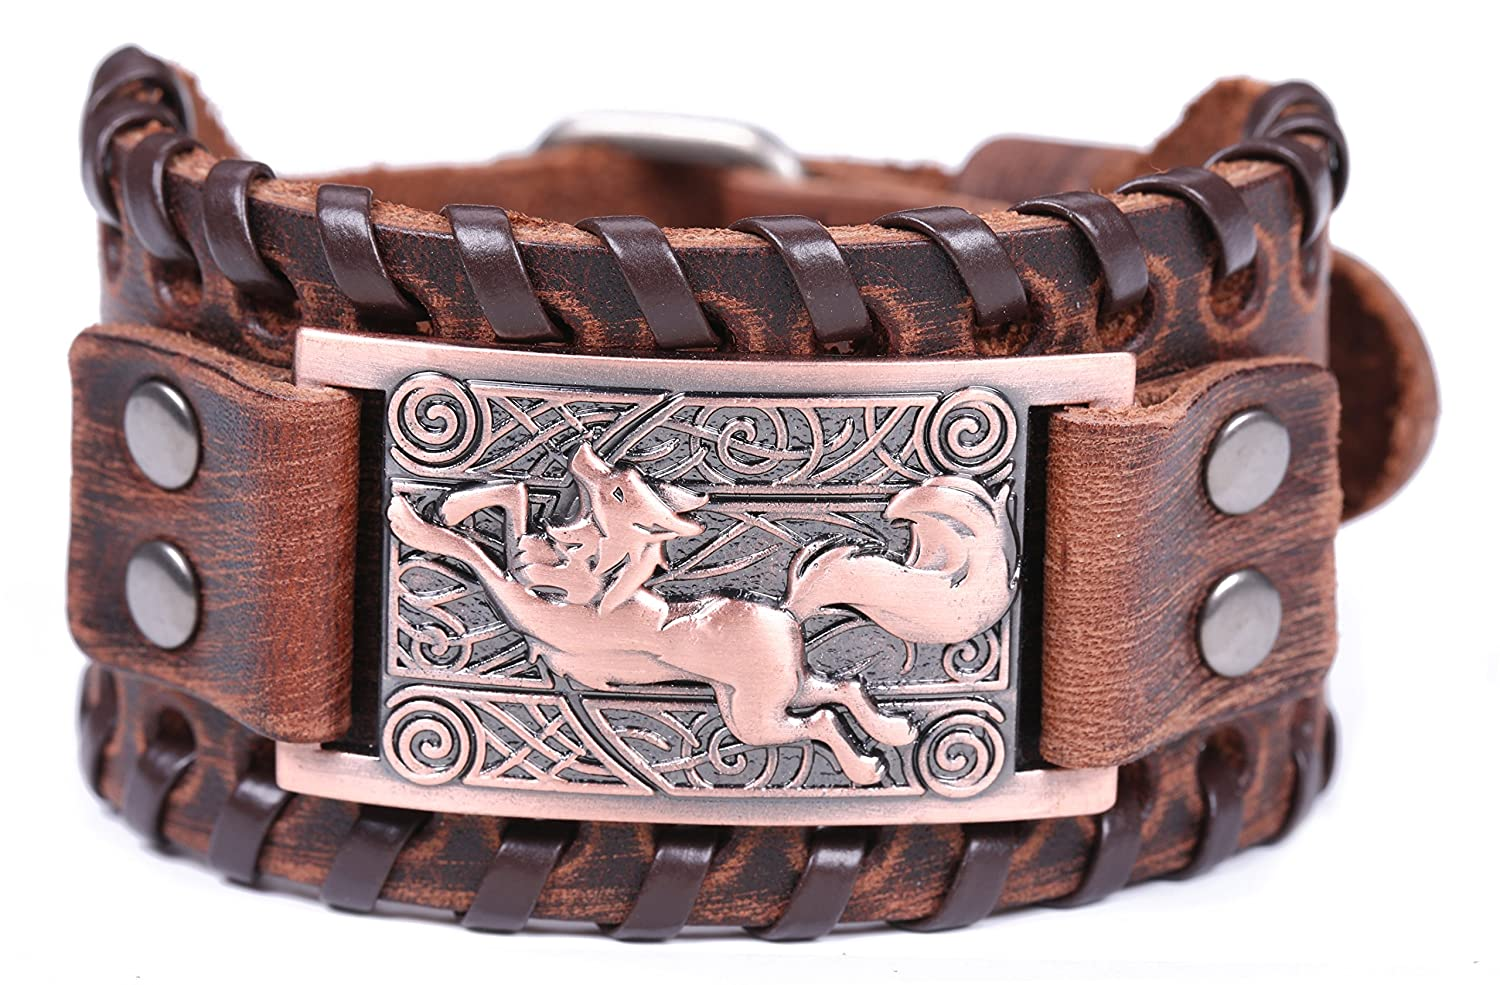 VASSAGO Vintage Amulet Nordic Viking Wolf Celtic Knot Metal Charm Brown Leather Bracelet Spiritual Animal for Men/Women Gift Antique Bronze) YiYou